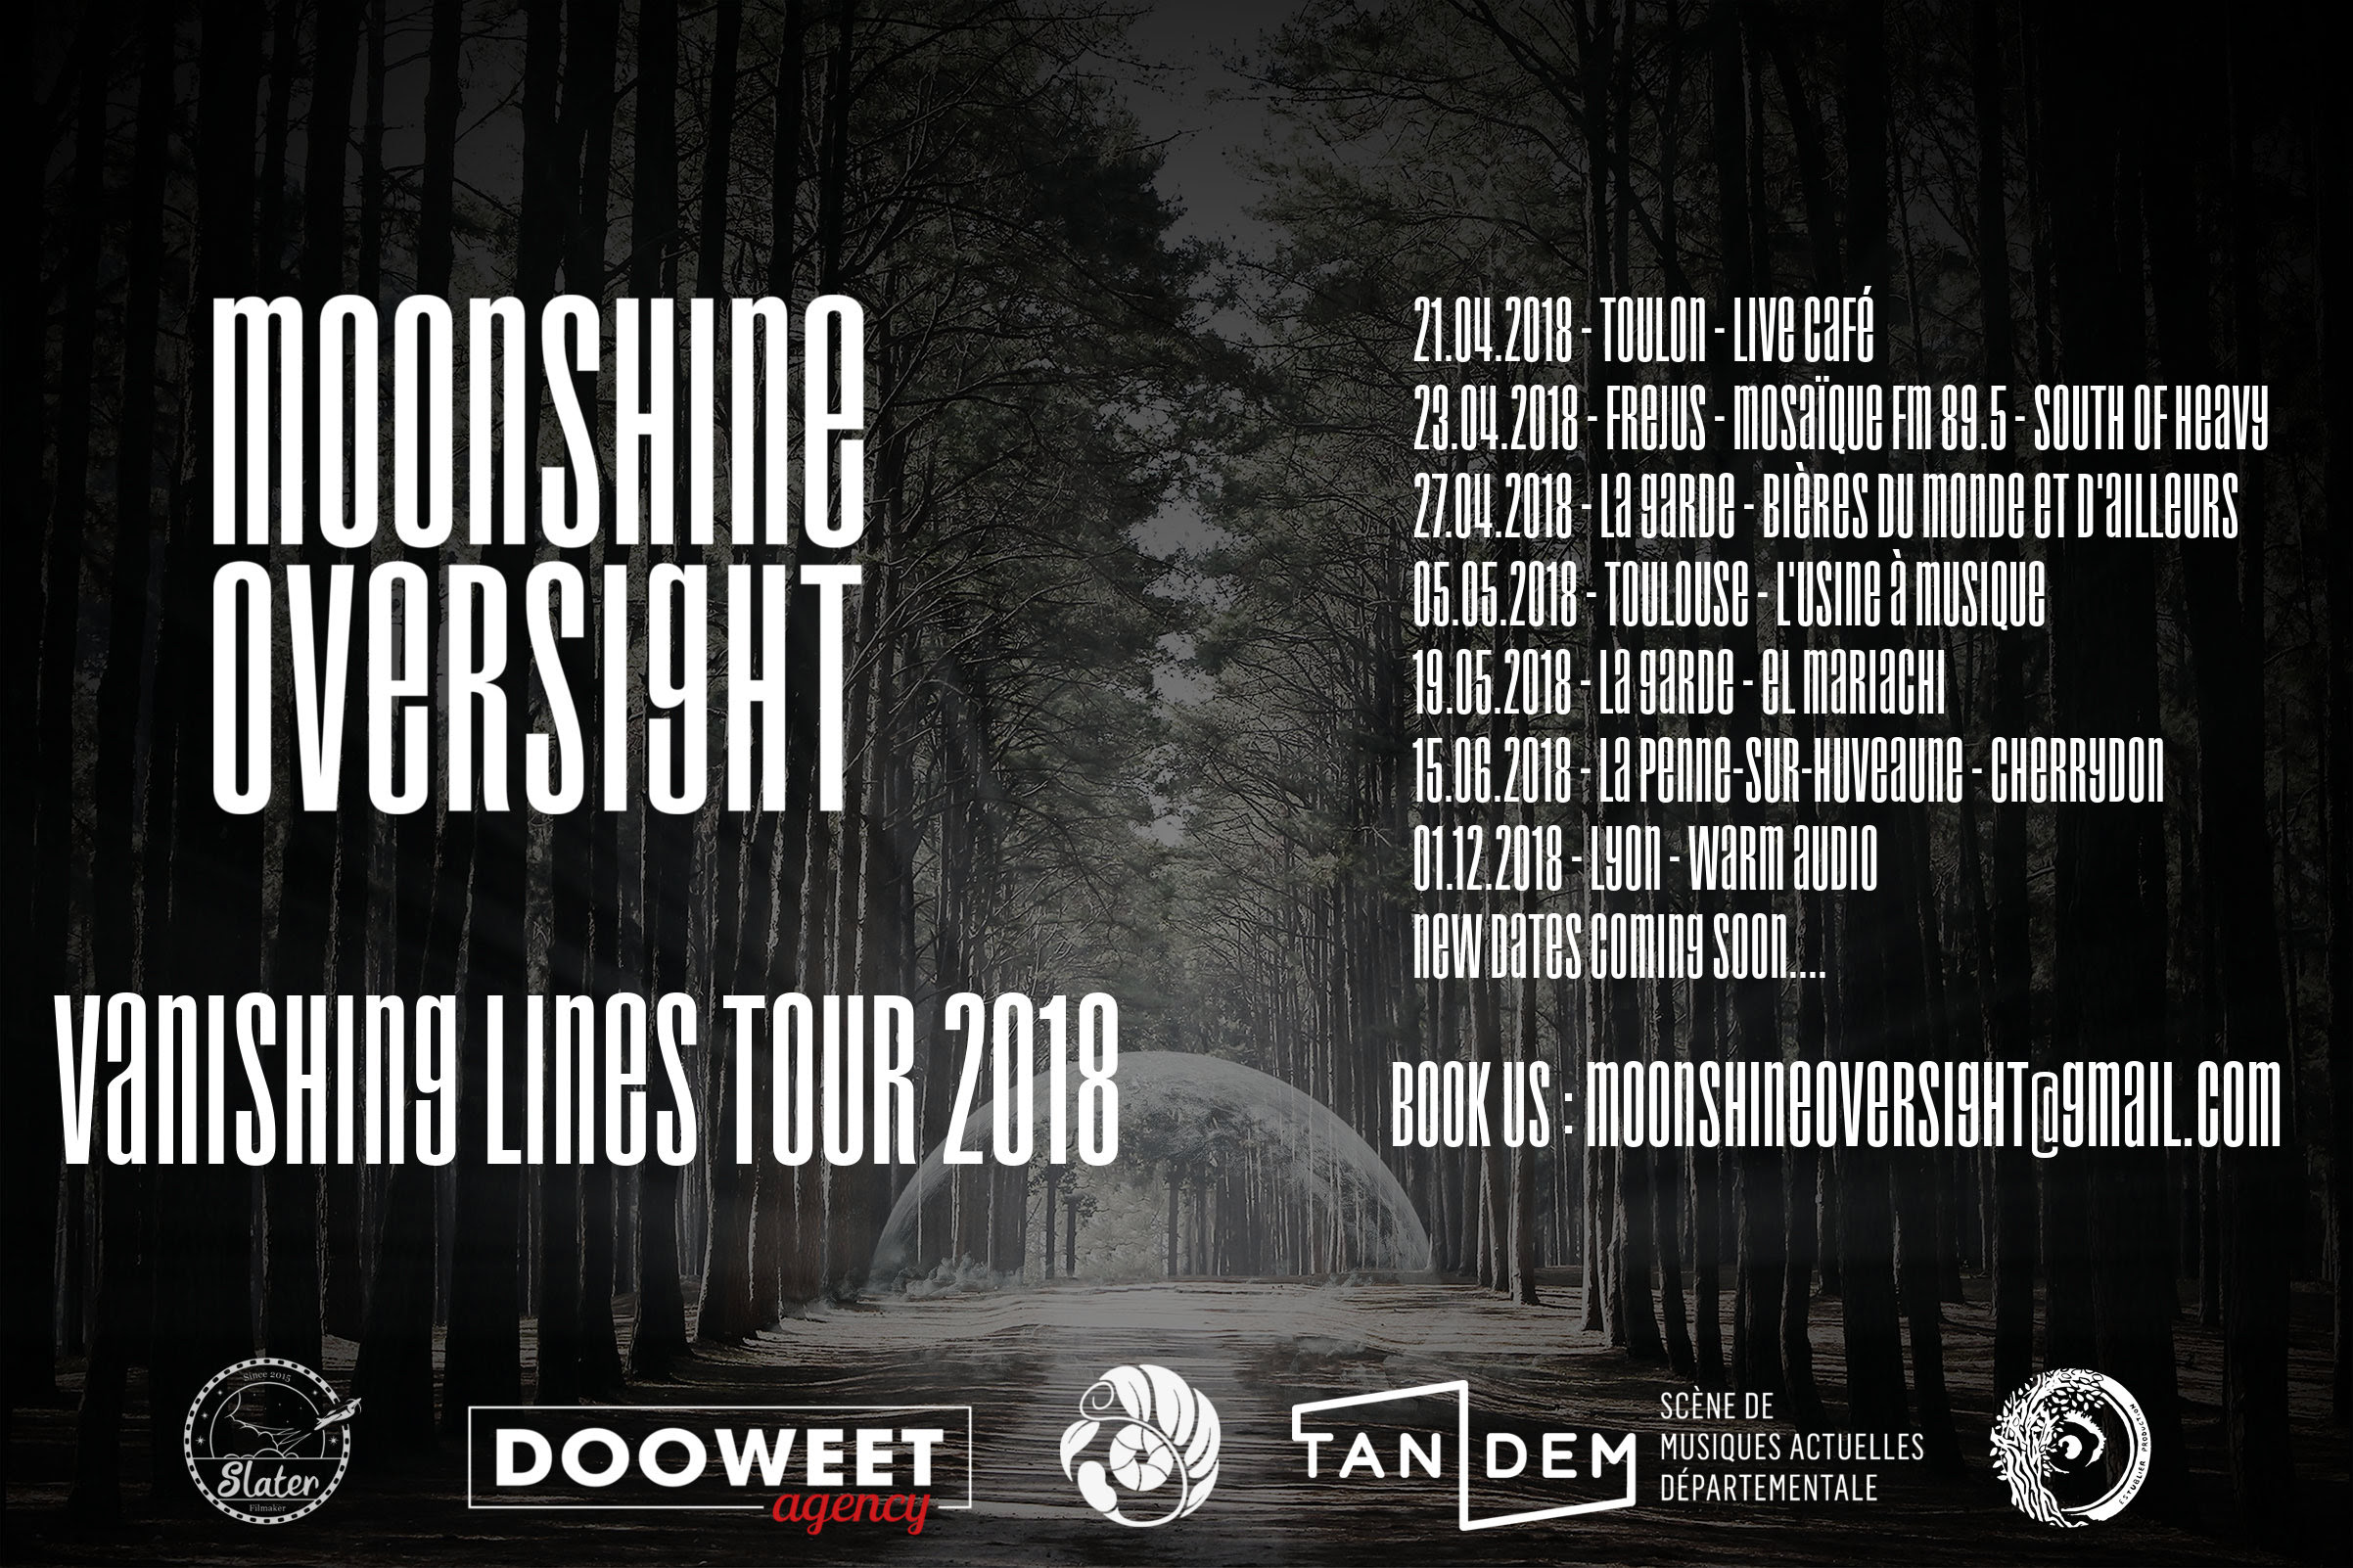 Moonshine Oversight - Tour 2018